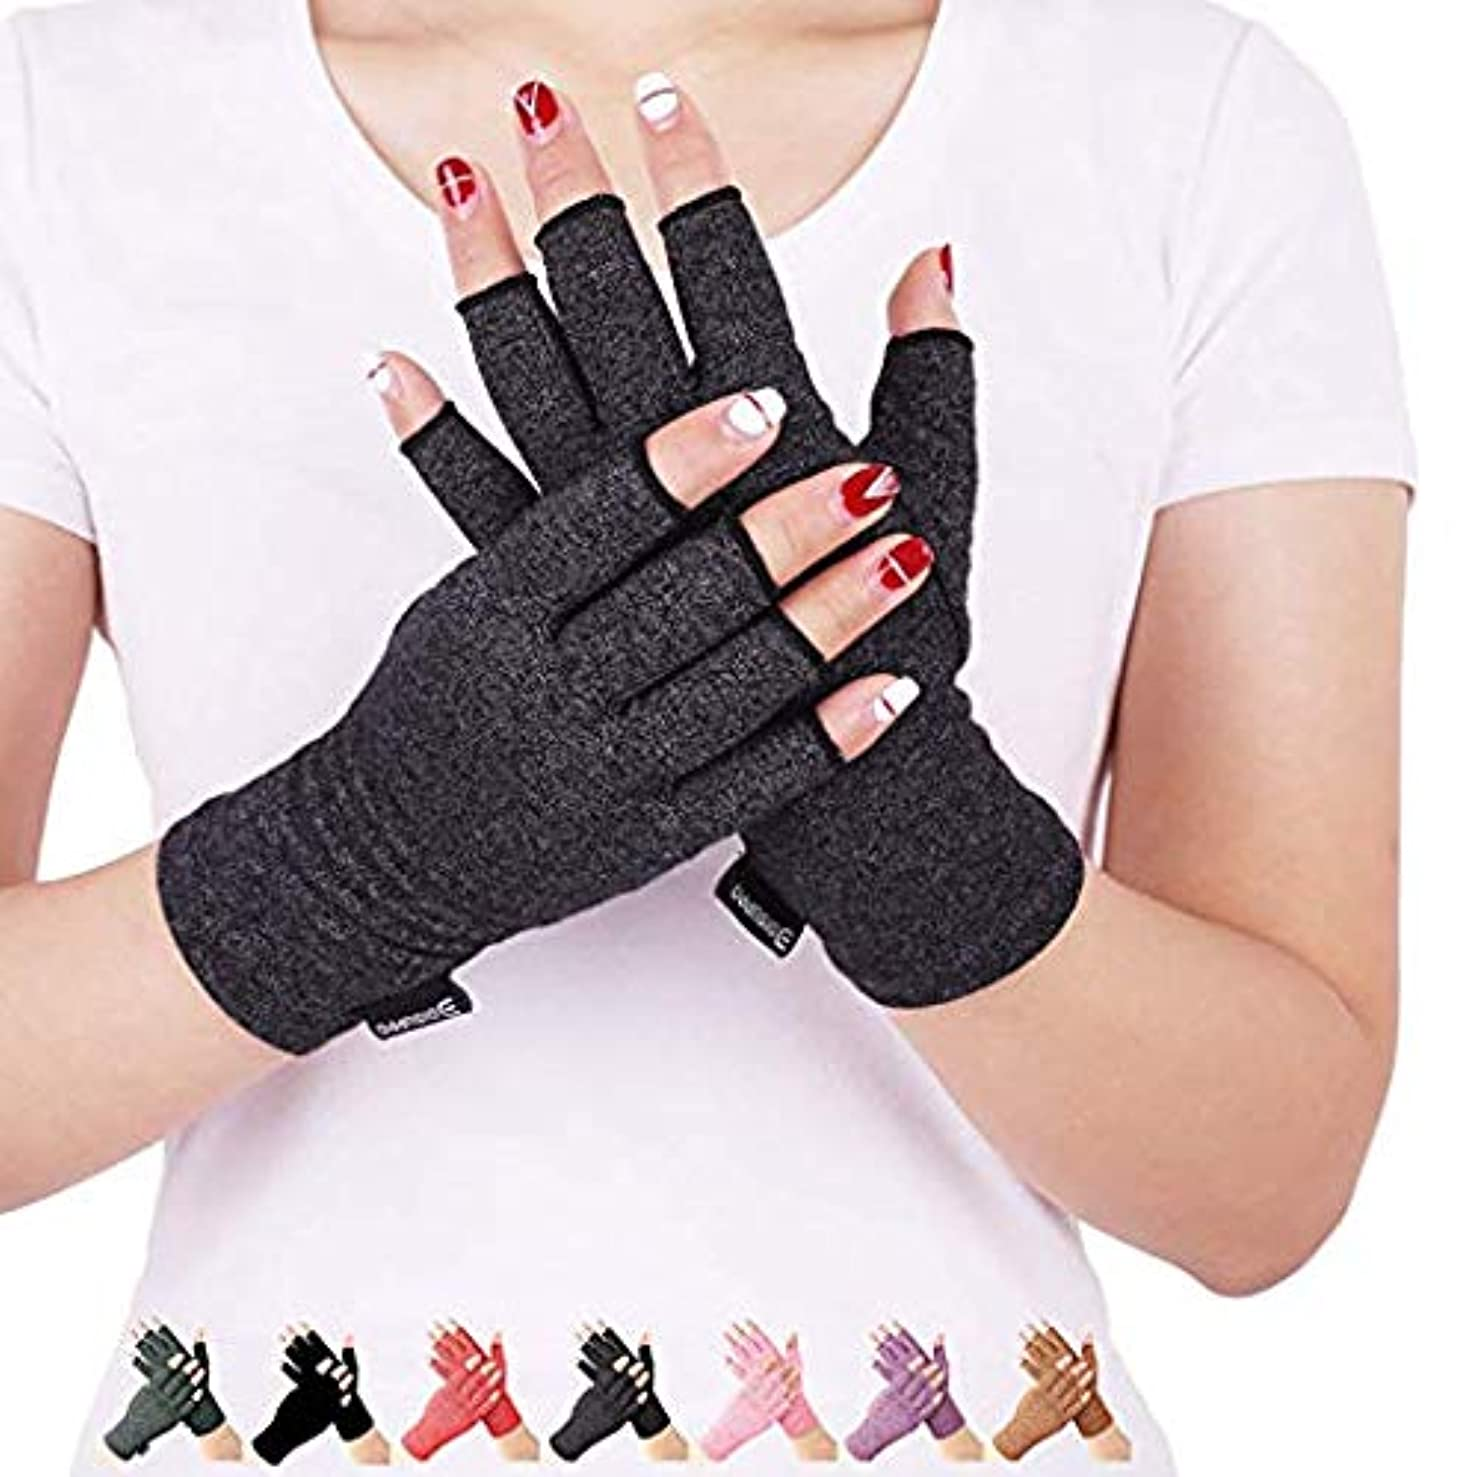 Arthritis Compression Gloves Relieve Pain from Rheumatoid, RSI,Carpal Tunnel, Hand Gloves Fingerless for Computer Typing and Dailywork, Support for Hands and Joints (Black, Large)